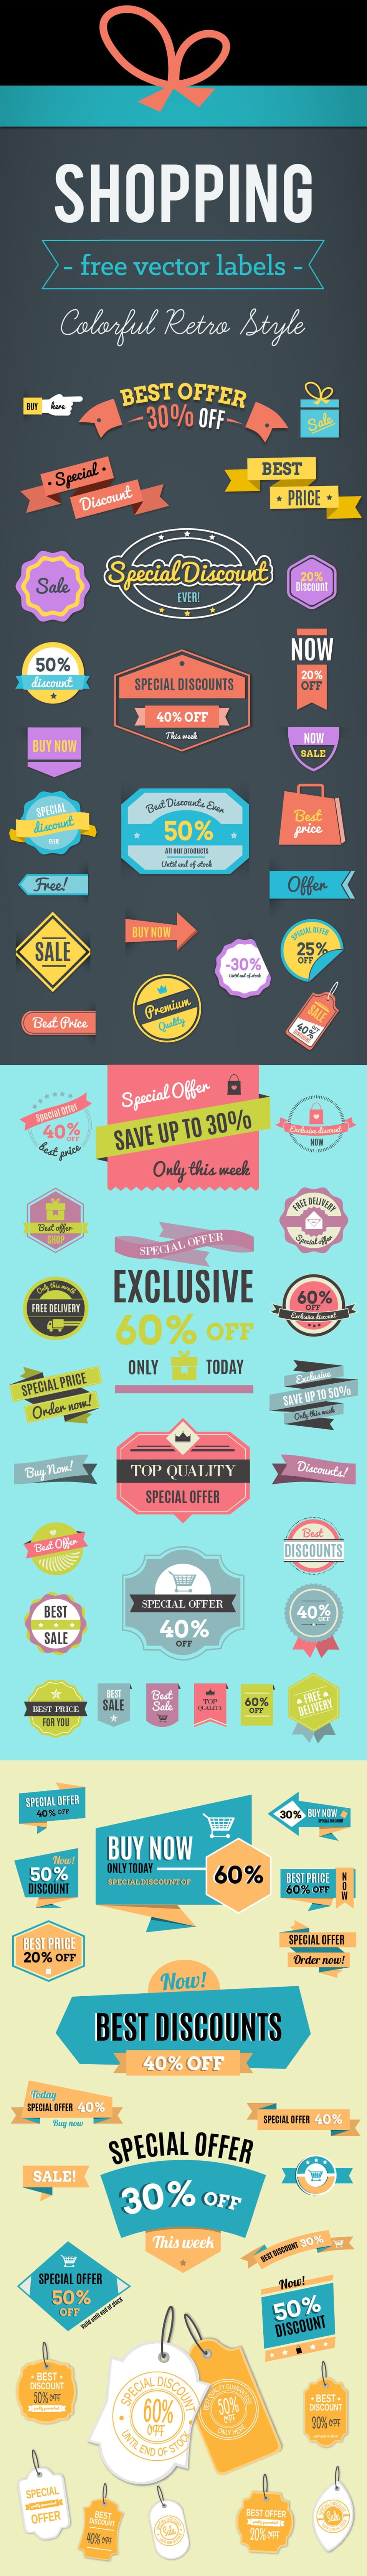 Free Vector Shopping Labels